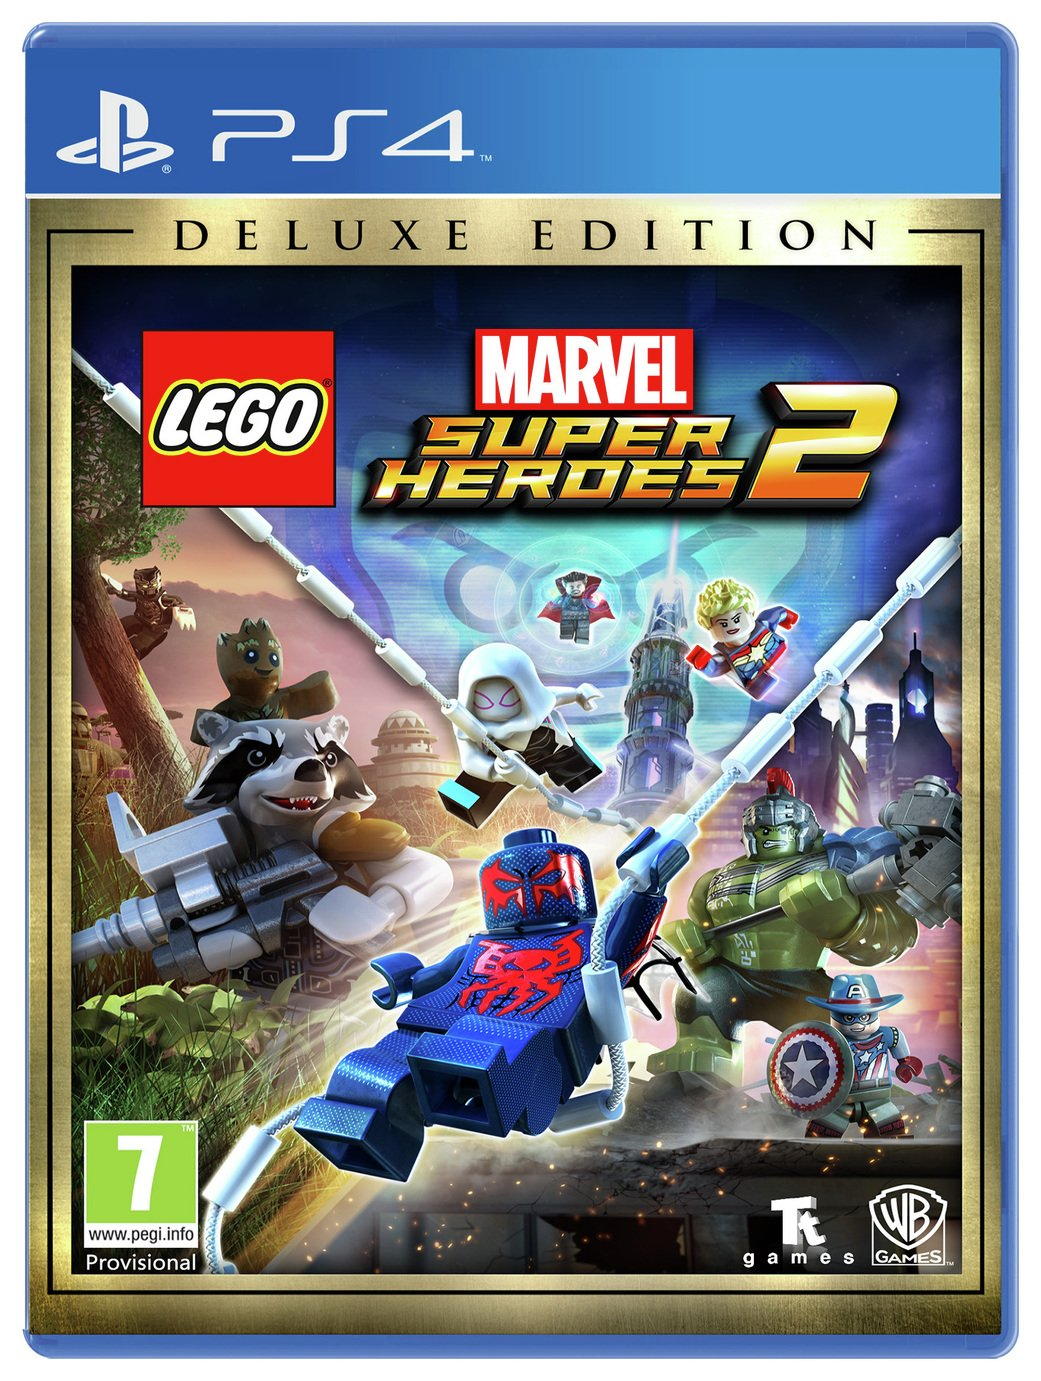 Lego Marvel Super Heroes 2 Deluxe Edition PS4 Game